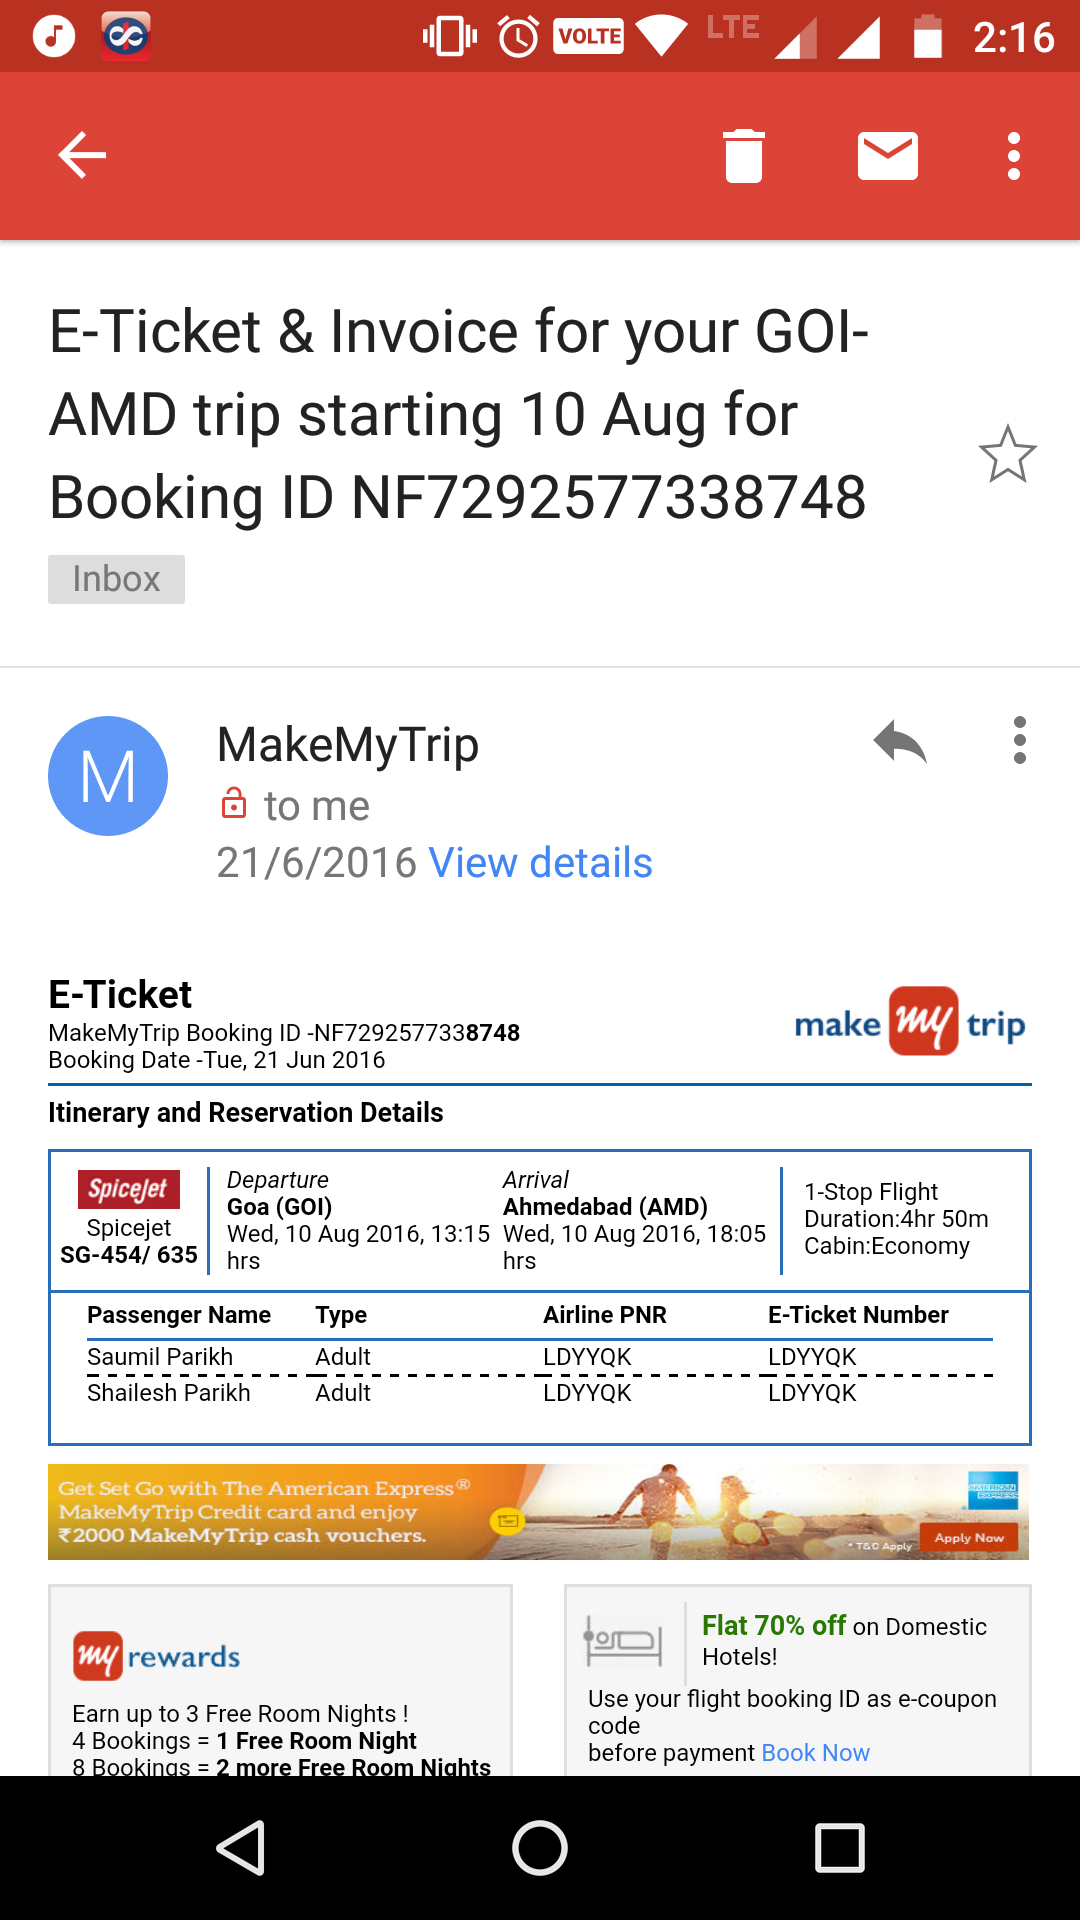 MakeMyTrip Complaints: No Refunds Or Changes Of Name